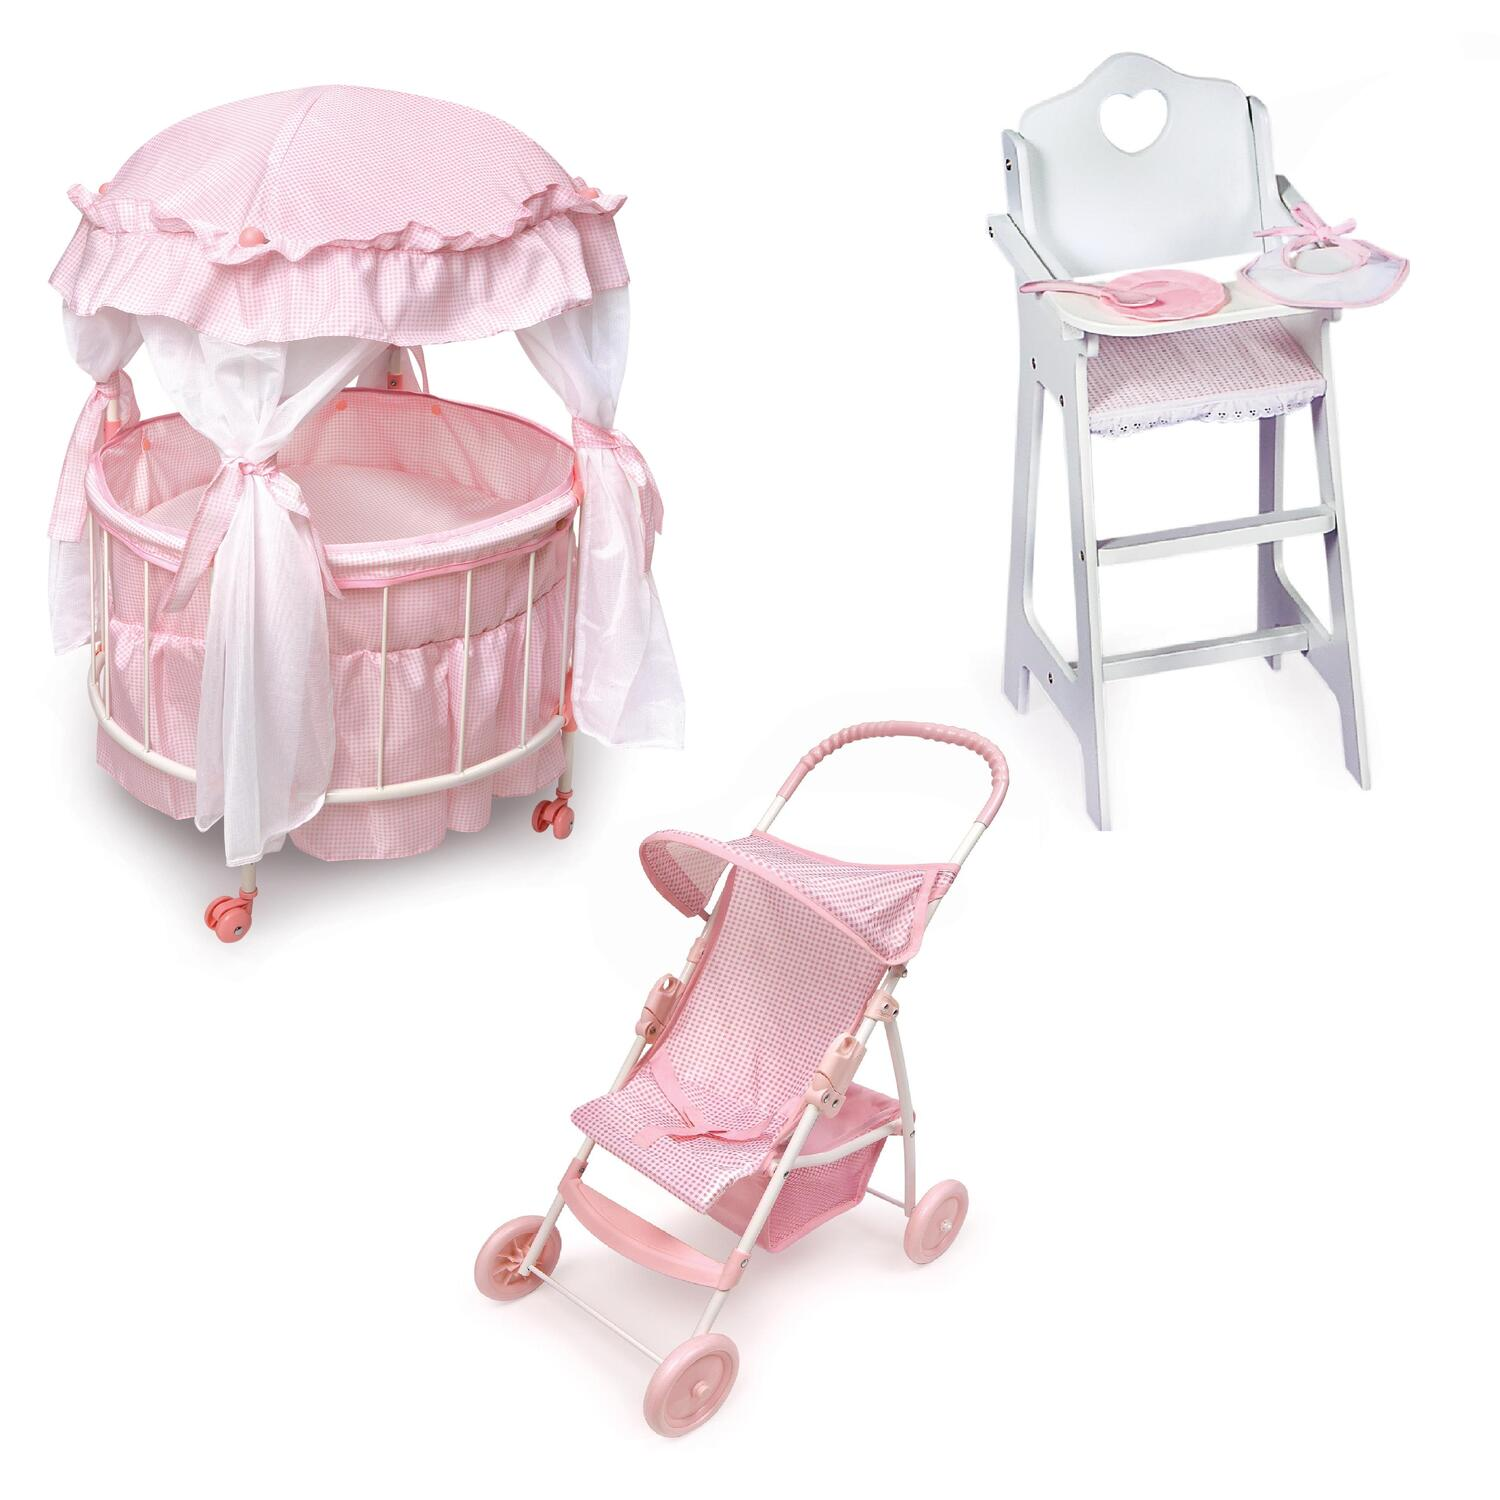 Badger Basket Royal Pavilion Doll Crib Furniture Set by OJ